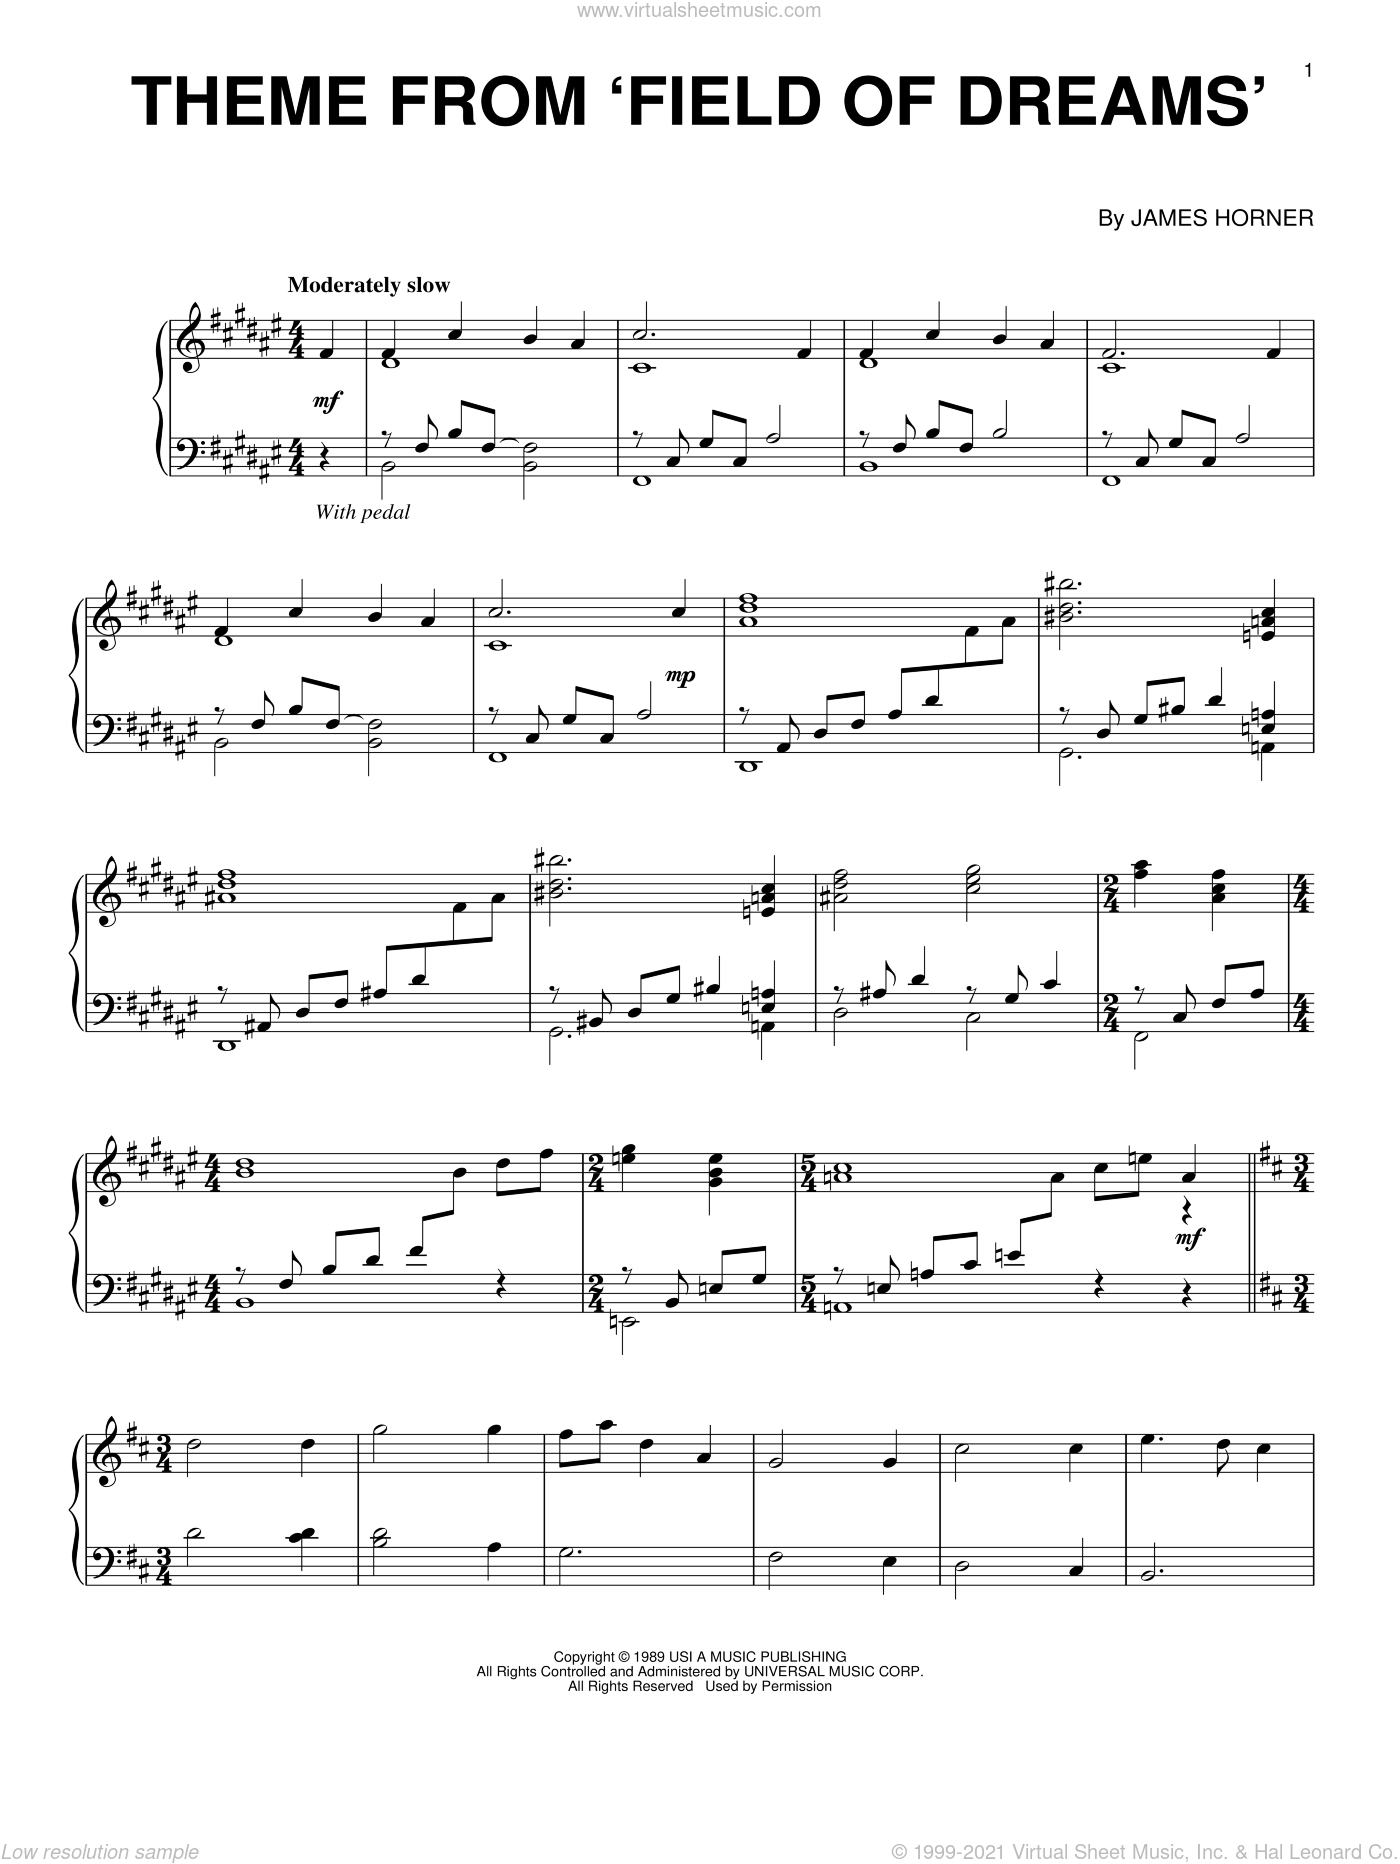 Theme From Field Of Dreams sheet music for piano solo by James Horner, intermediate skill level